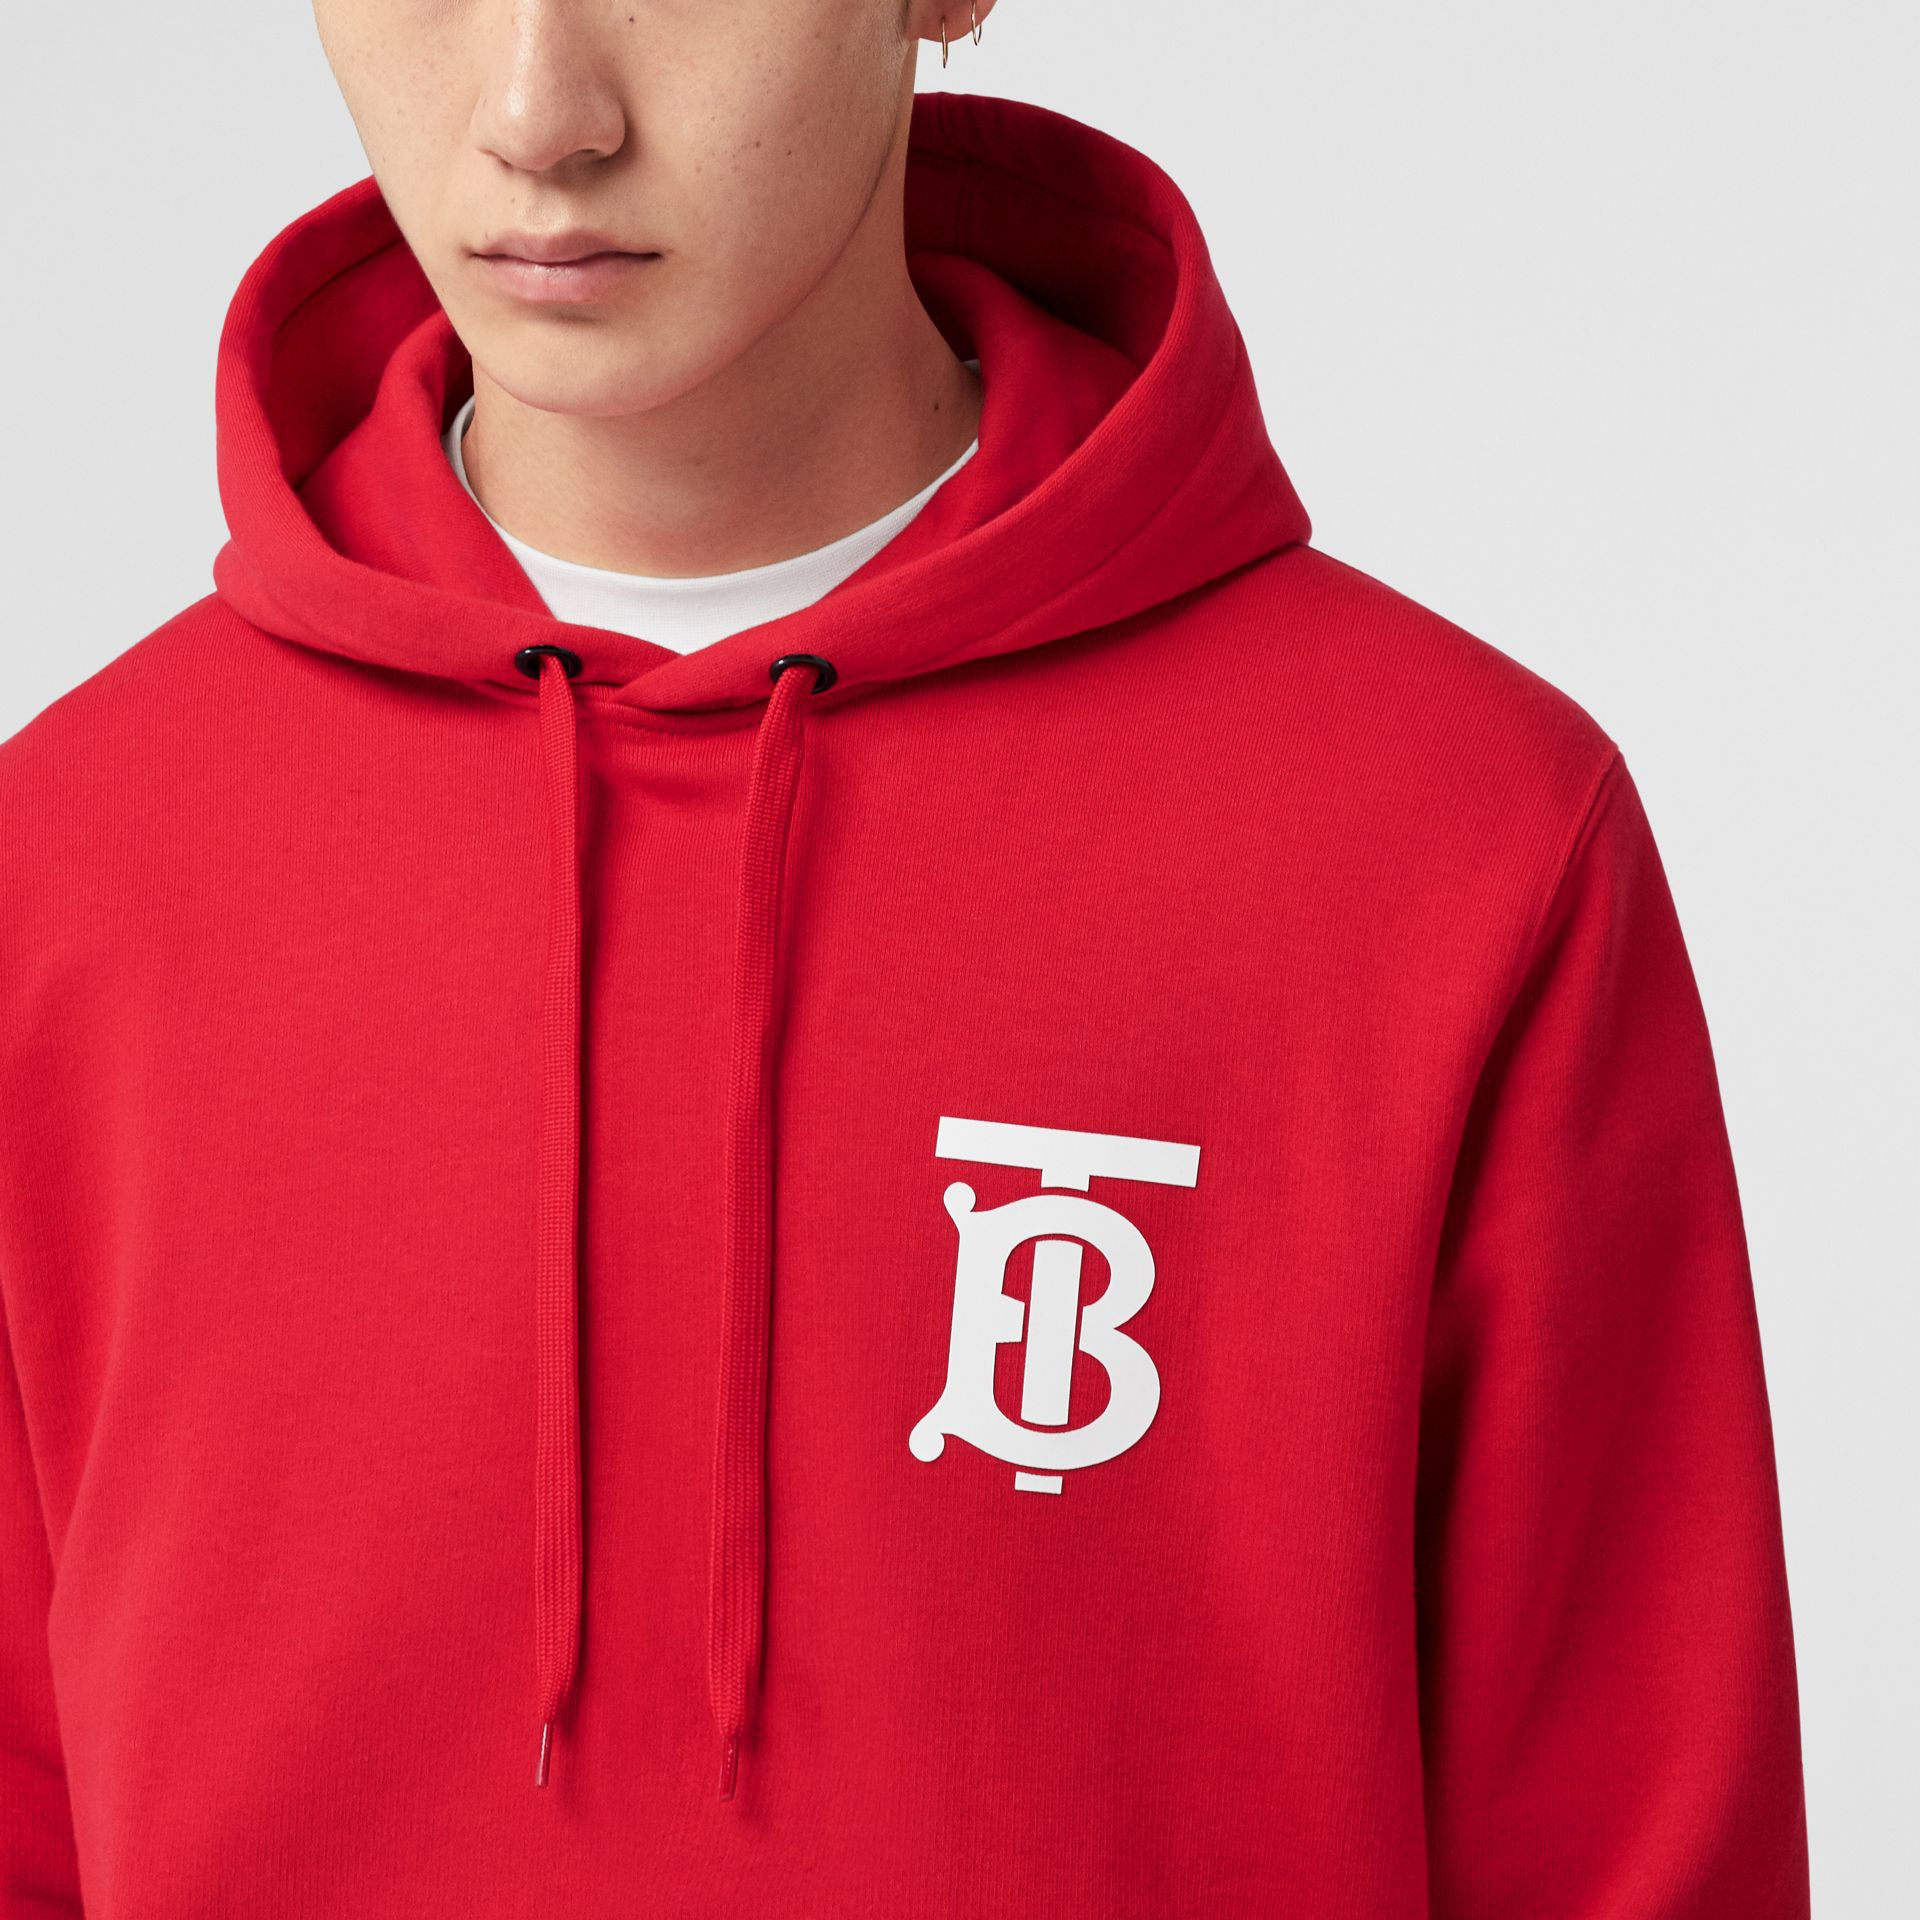 Monogram Motif Cotton Hoodie in Bright Red - Men | Burberry Hong Kong S.A.R - gallery image 5